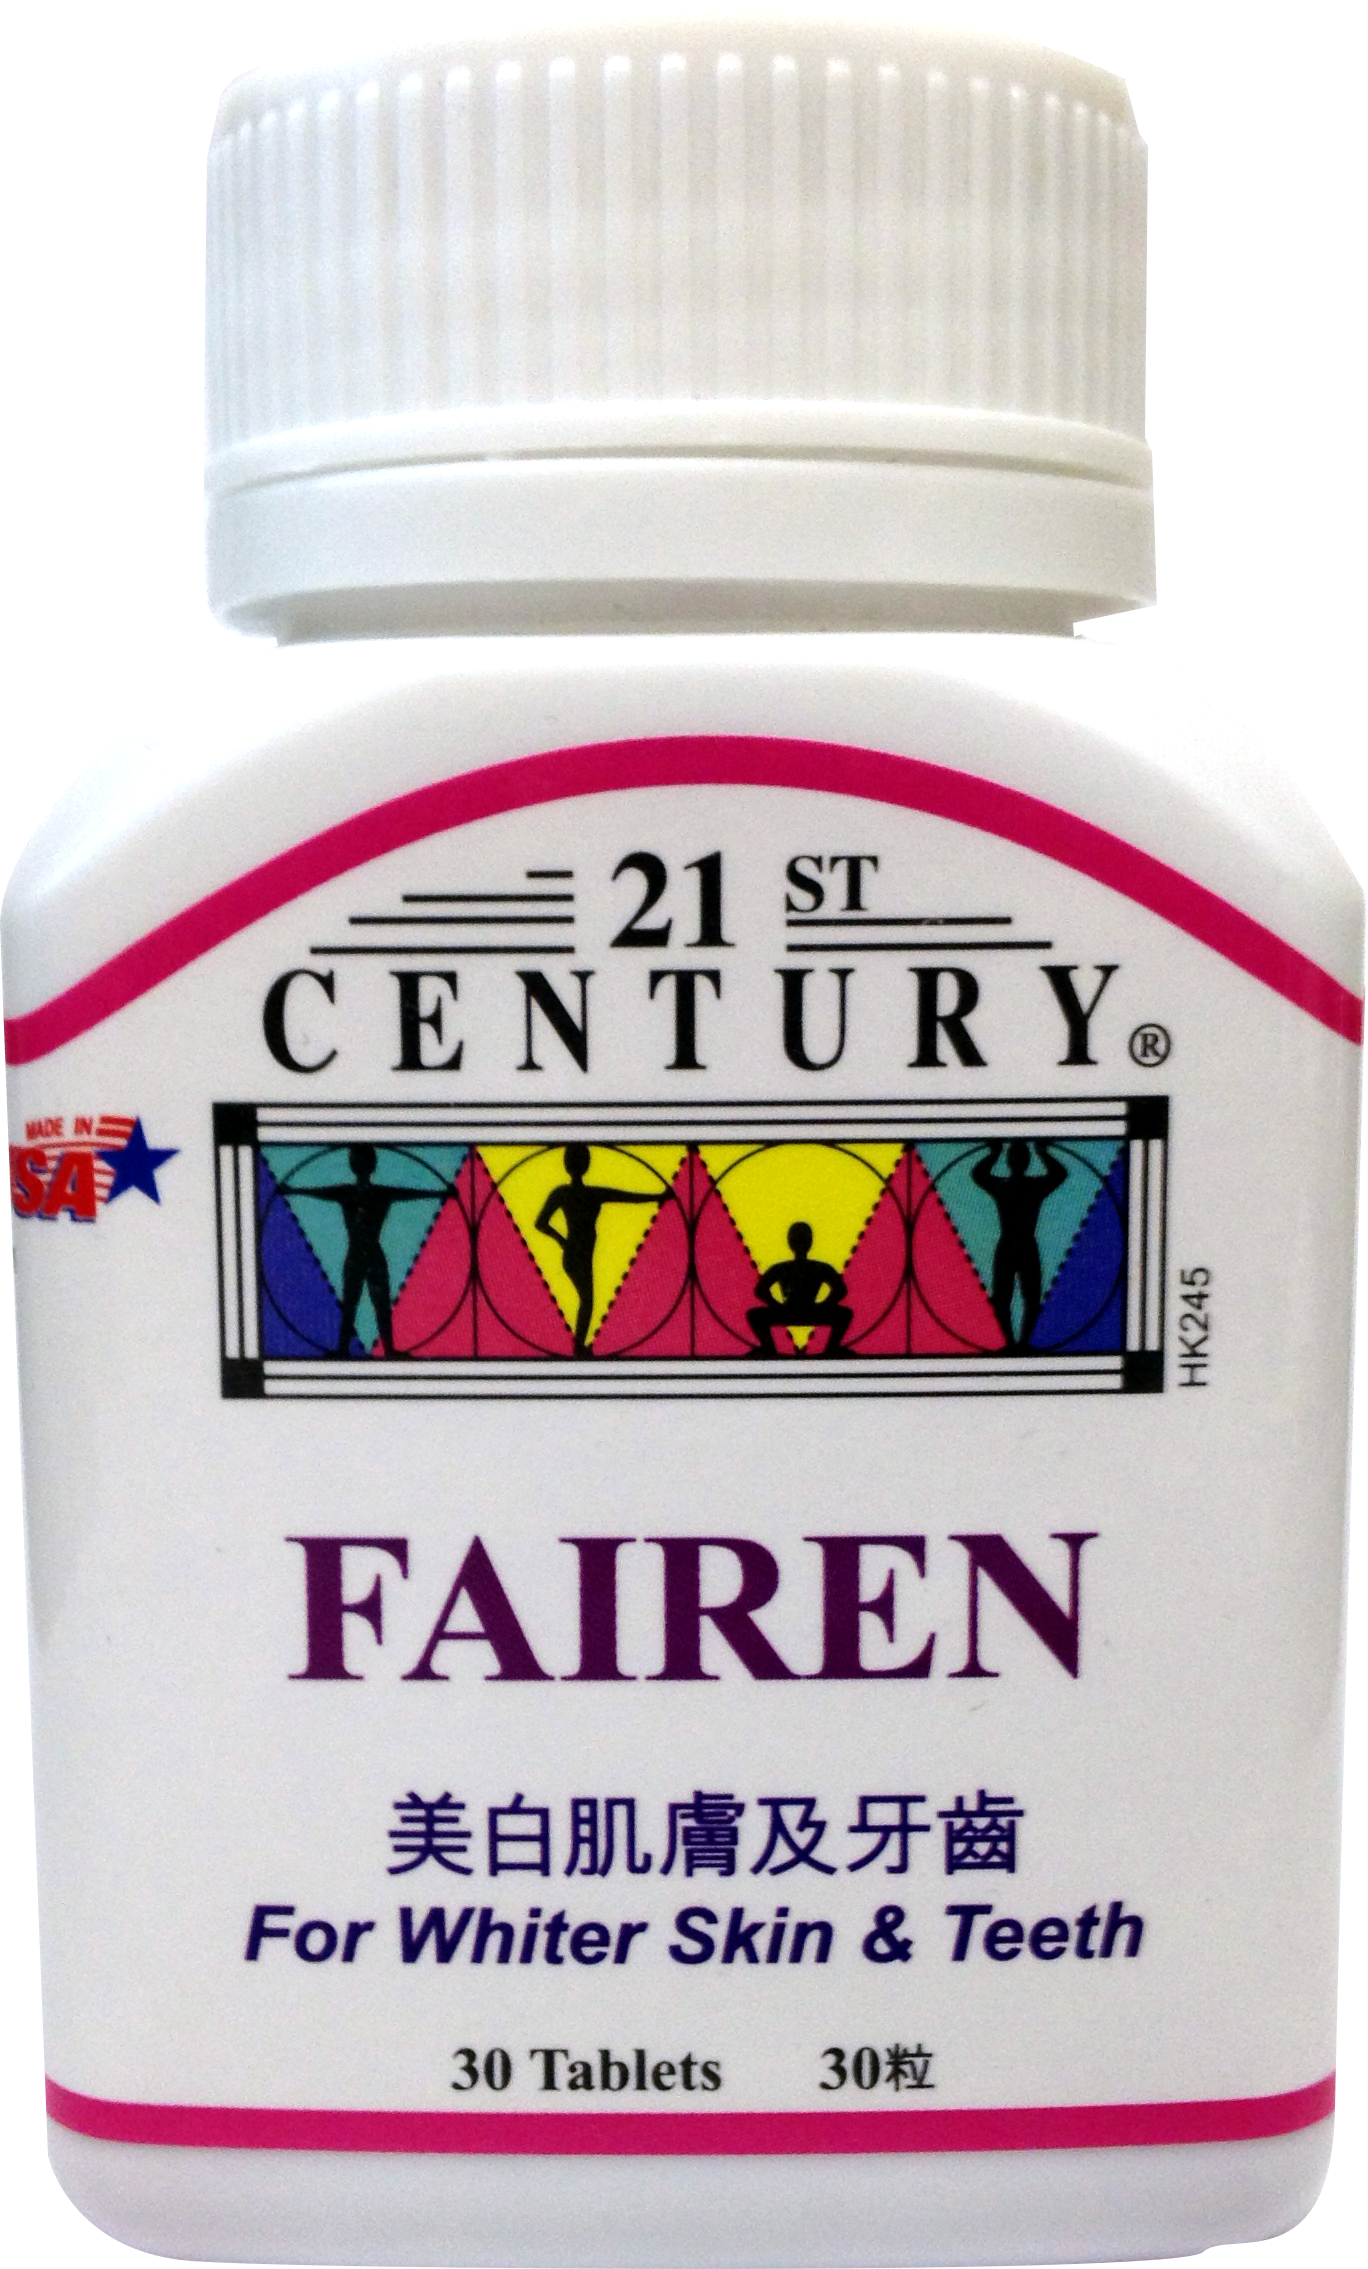 FAIREN TABLETS - Natural & Safe Skin & Teeth Whitening